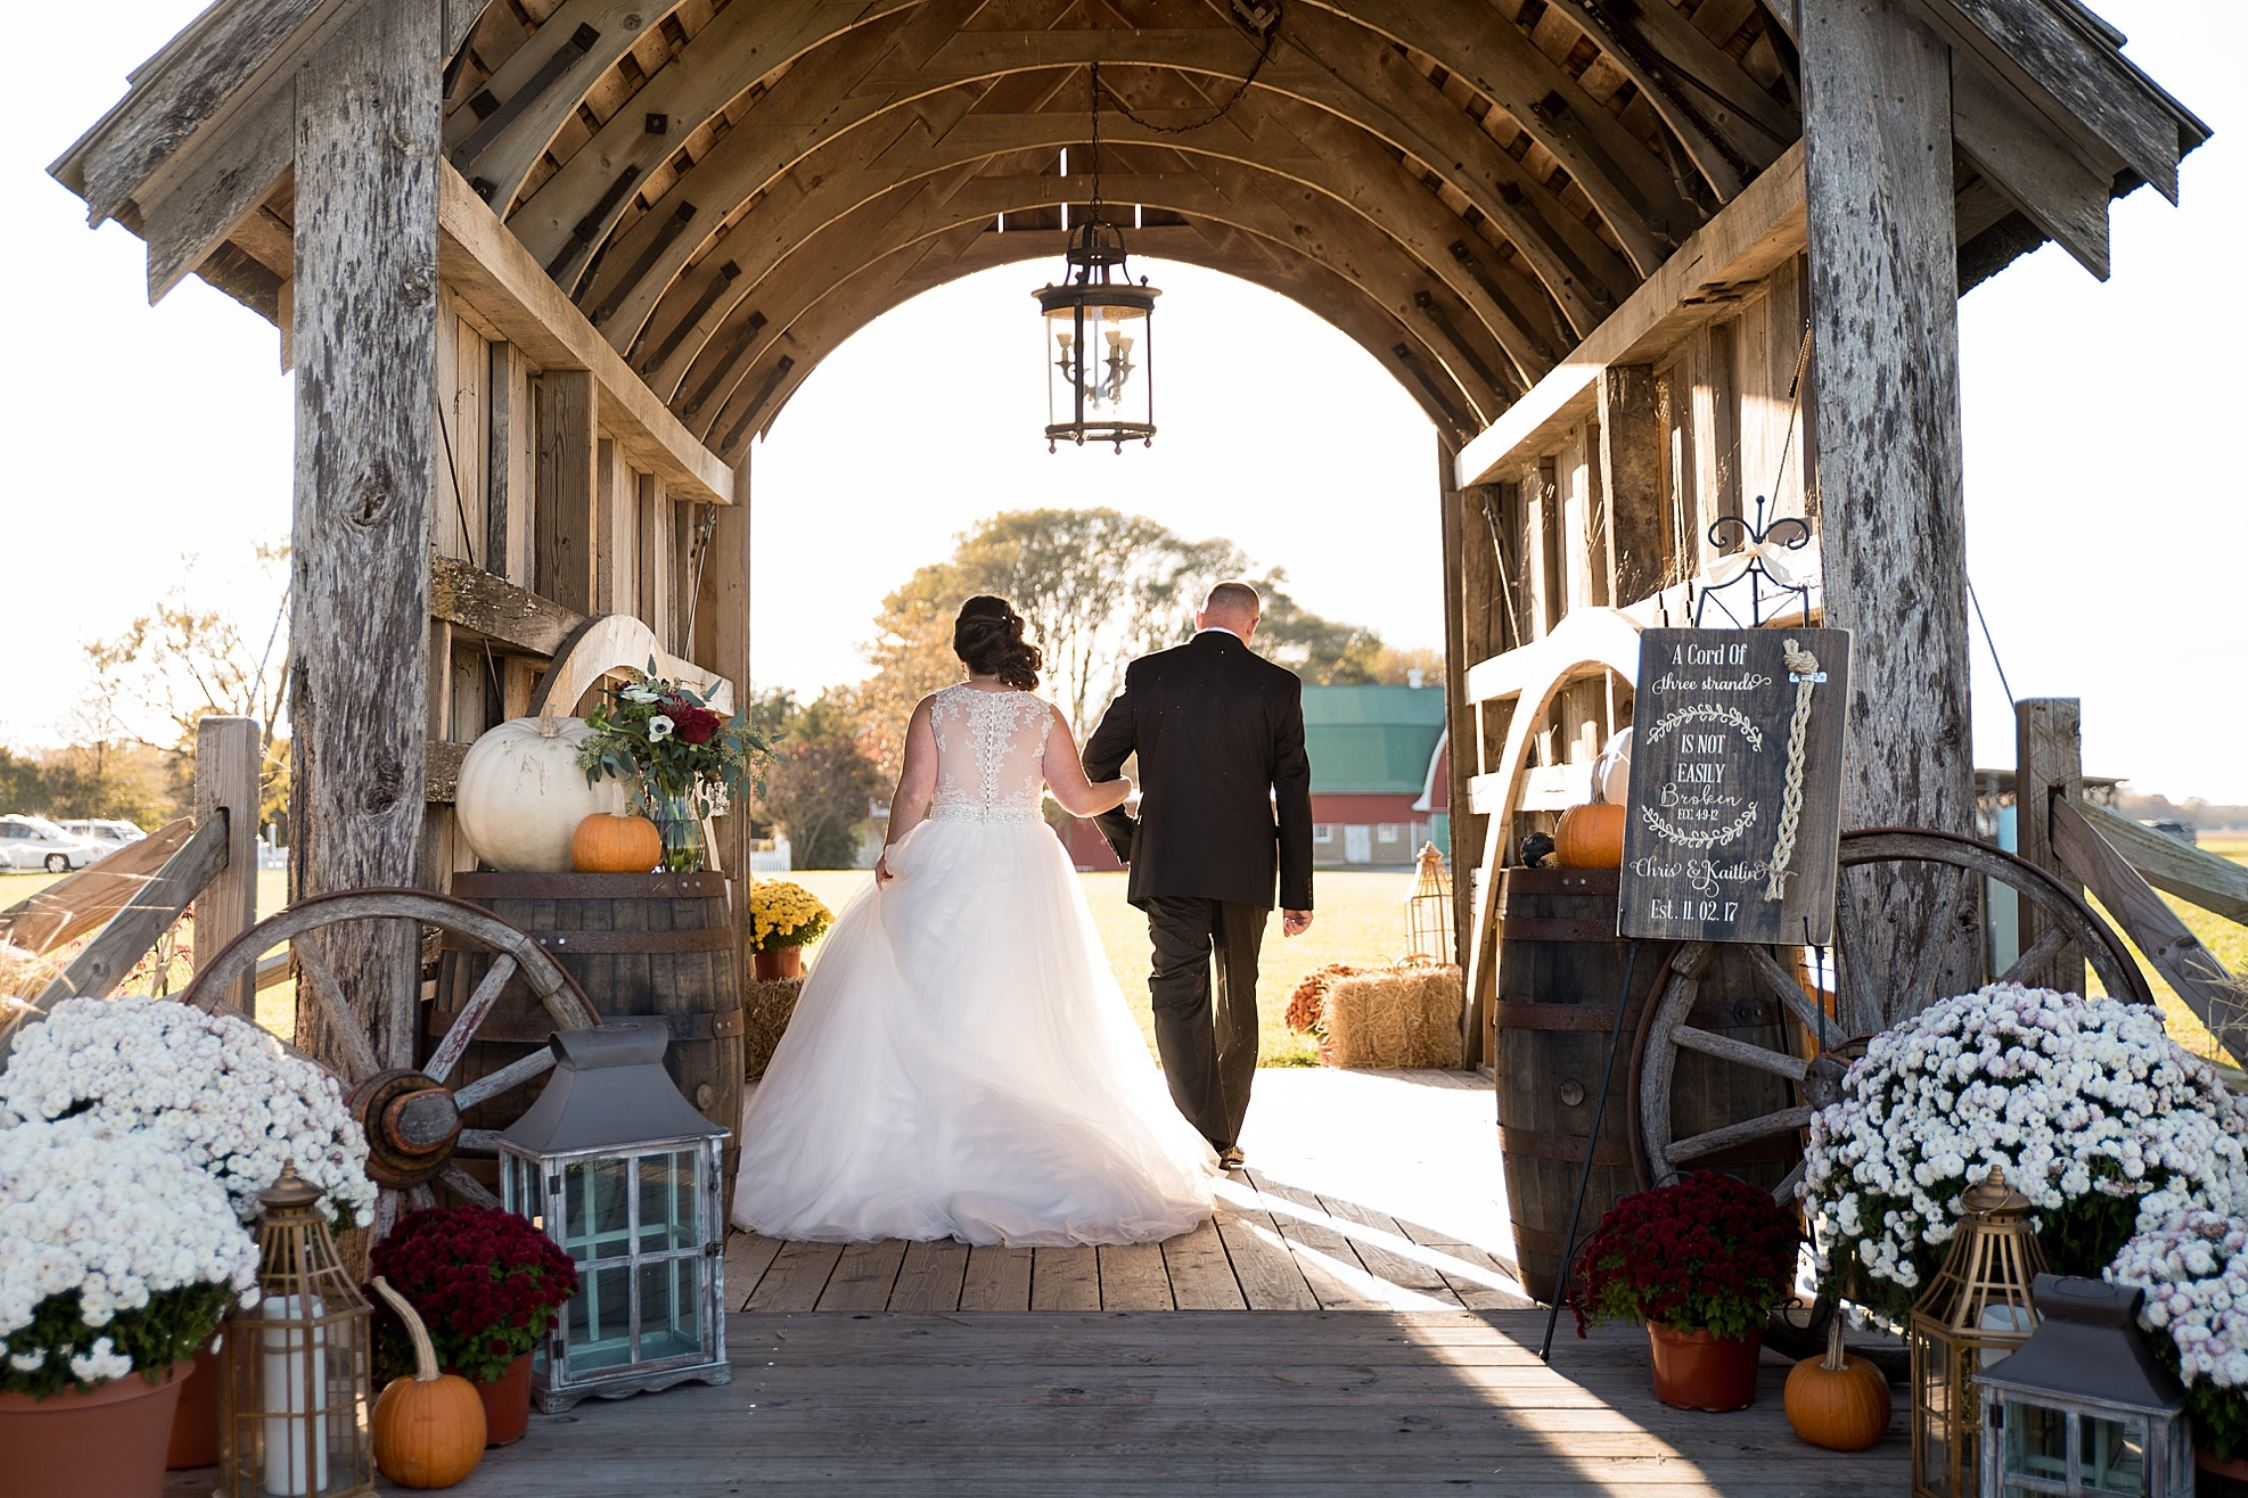 A wedding couple is holding hands and standing under a covered bridge.